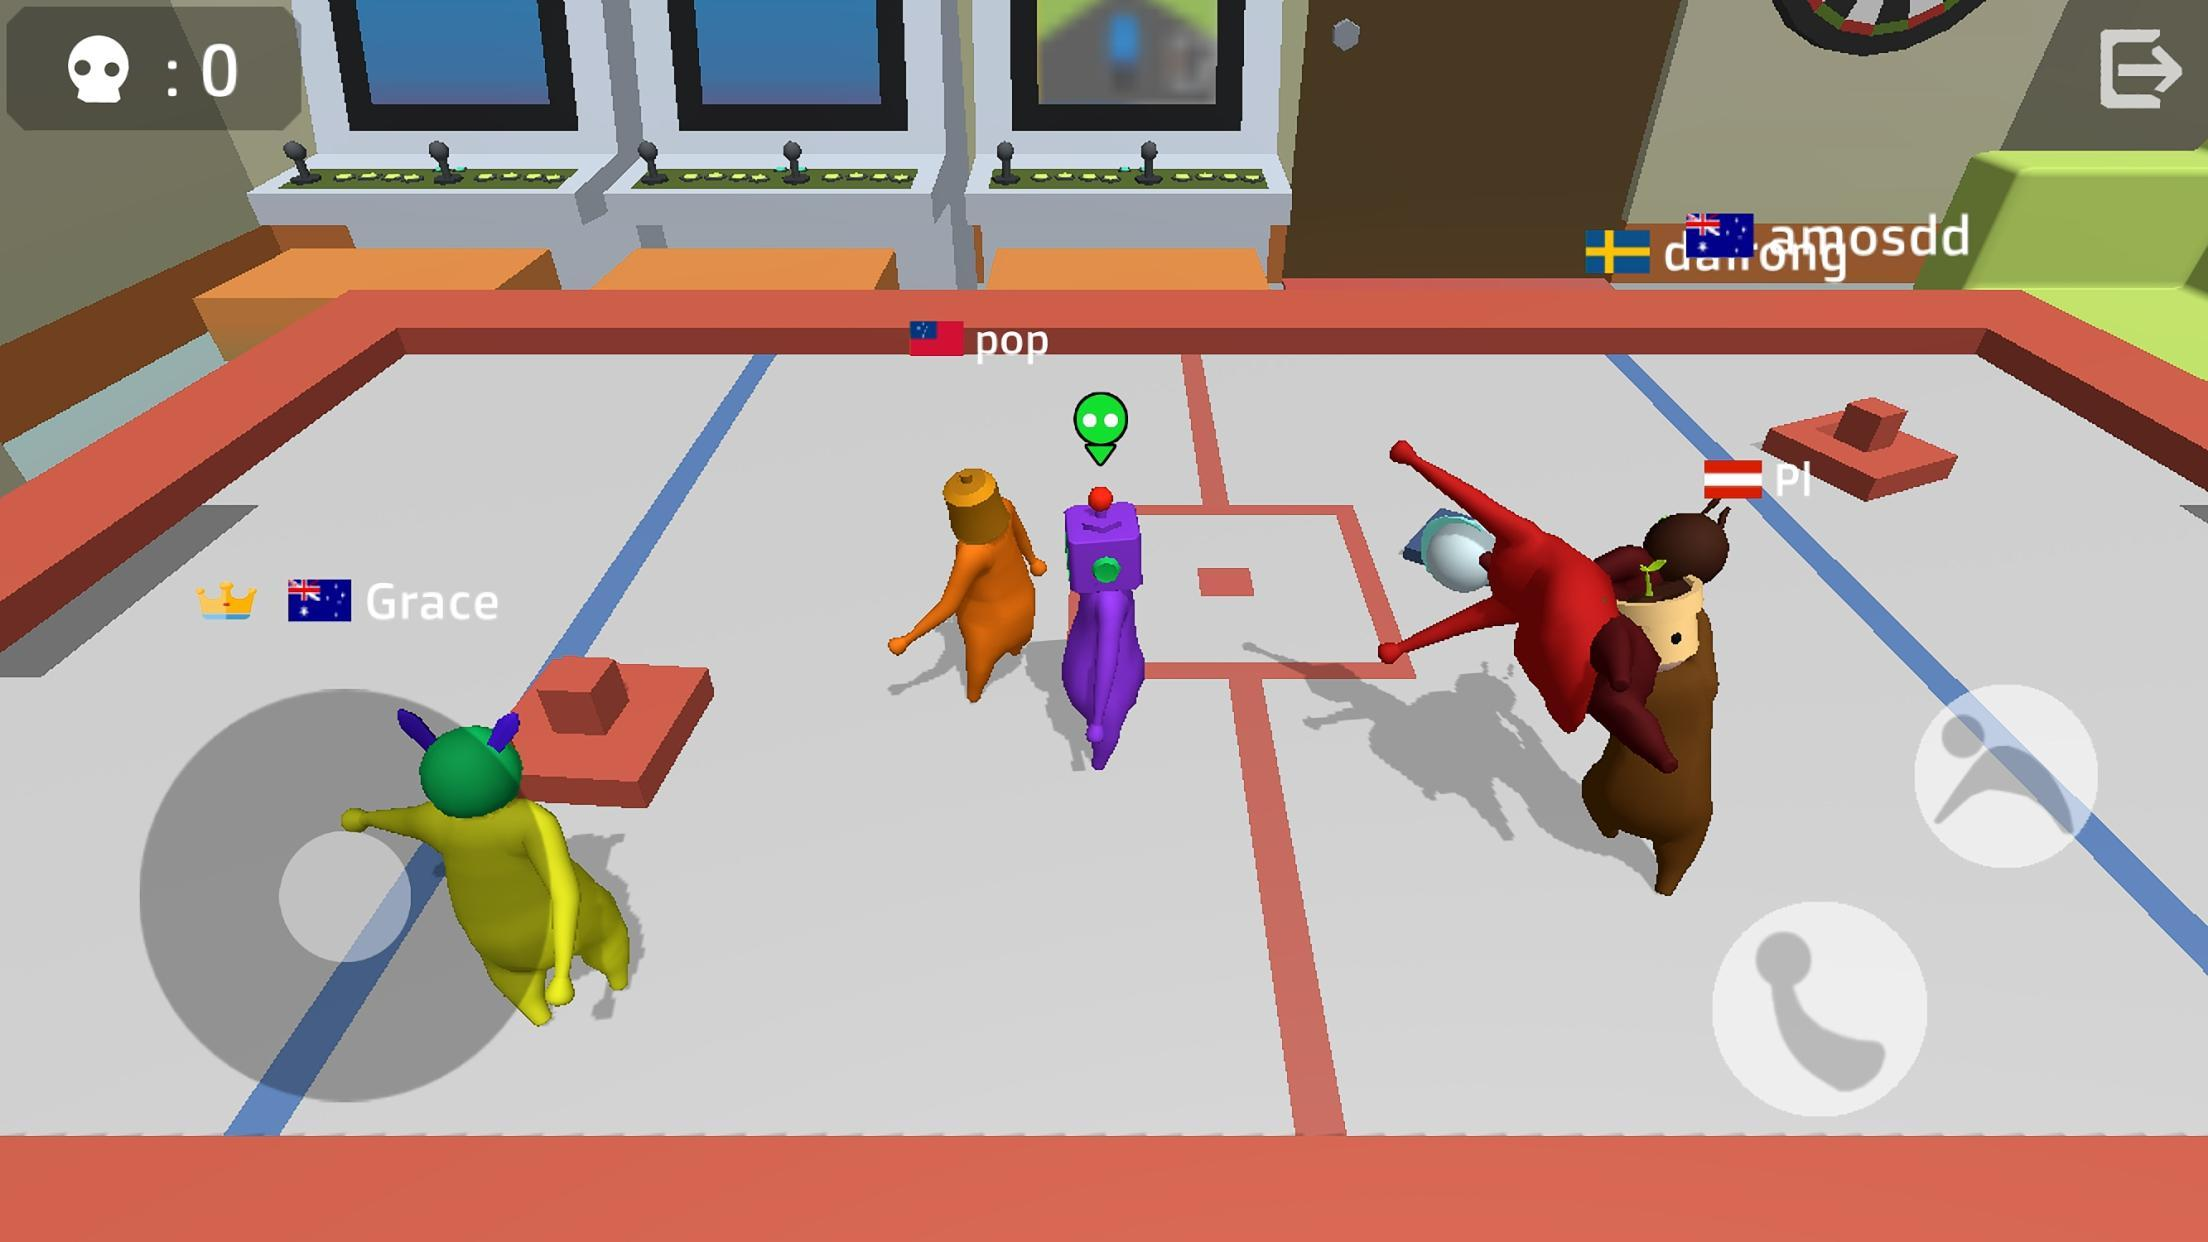 Noodleman.io - Fight Party Games 3.3 Screenshot 4